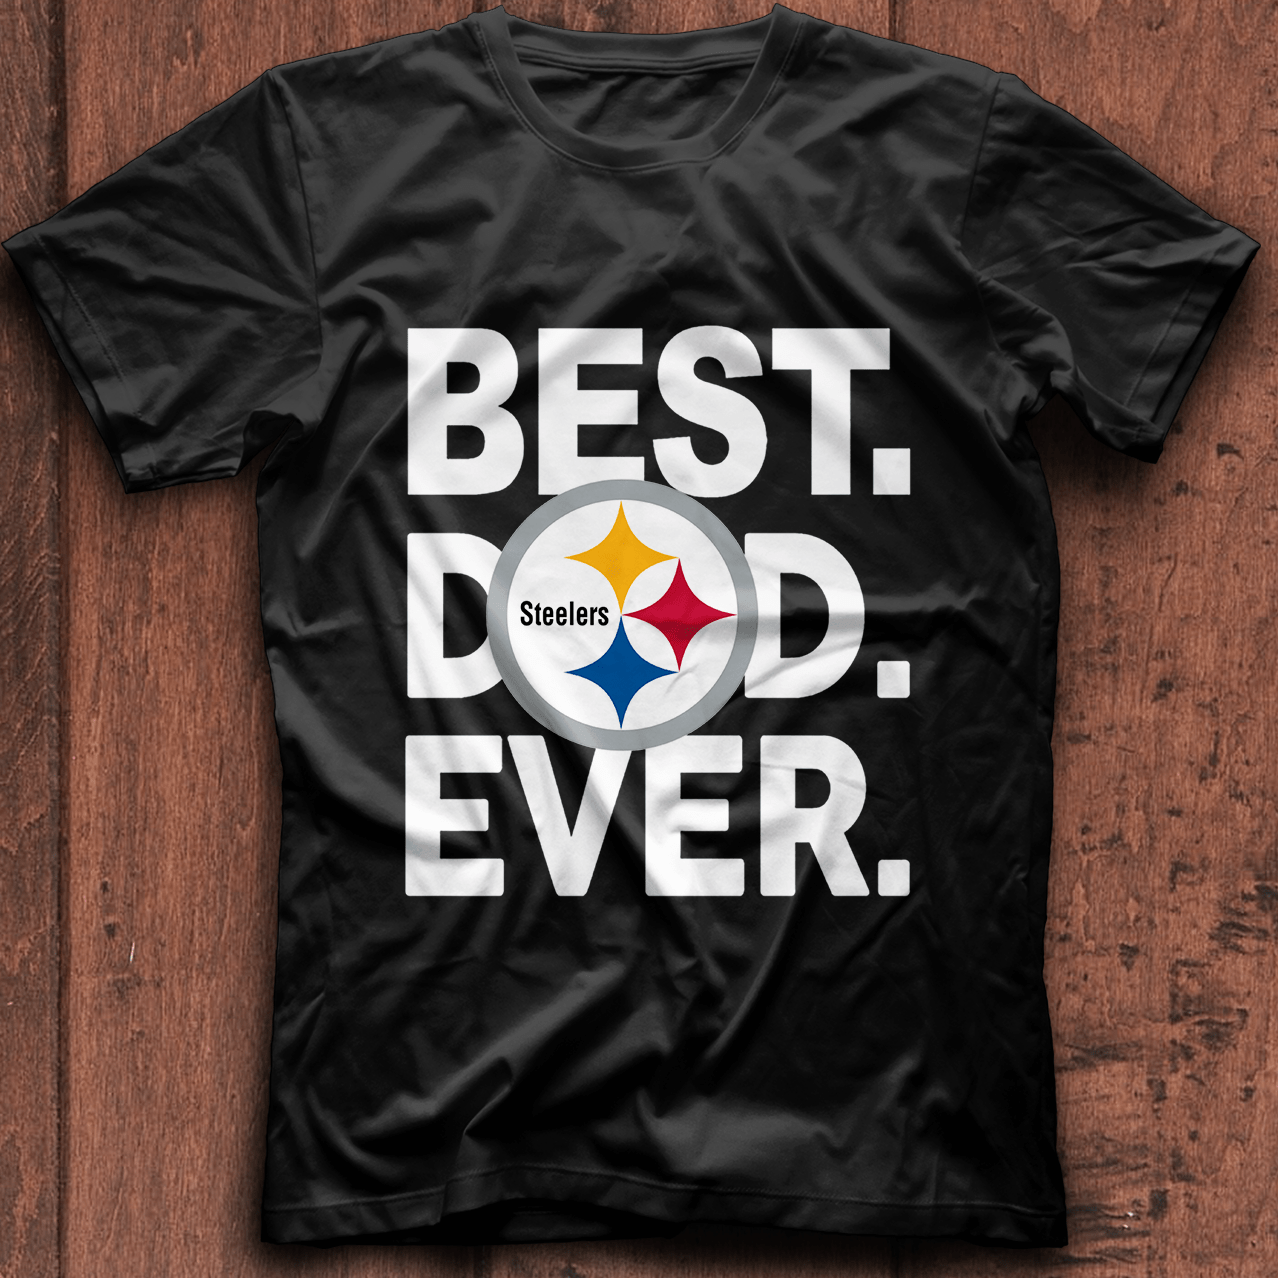 0fedec62 Pin by Ashley Miller on t-shirts | Steelers t shirts, Pittsburgh ...